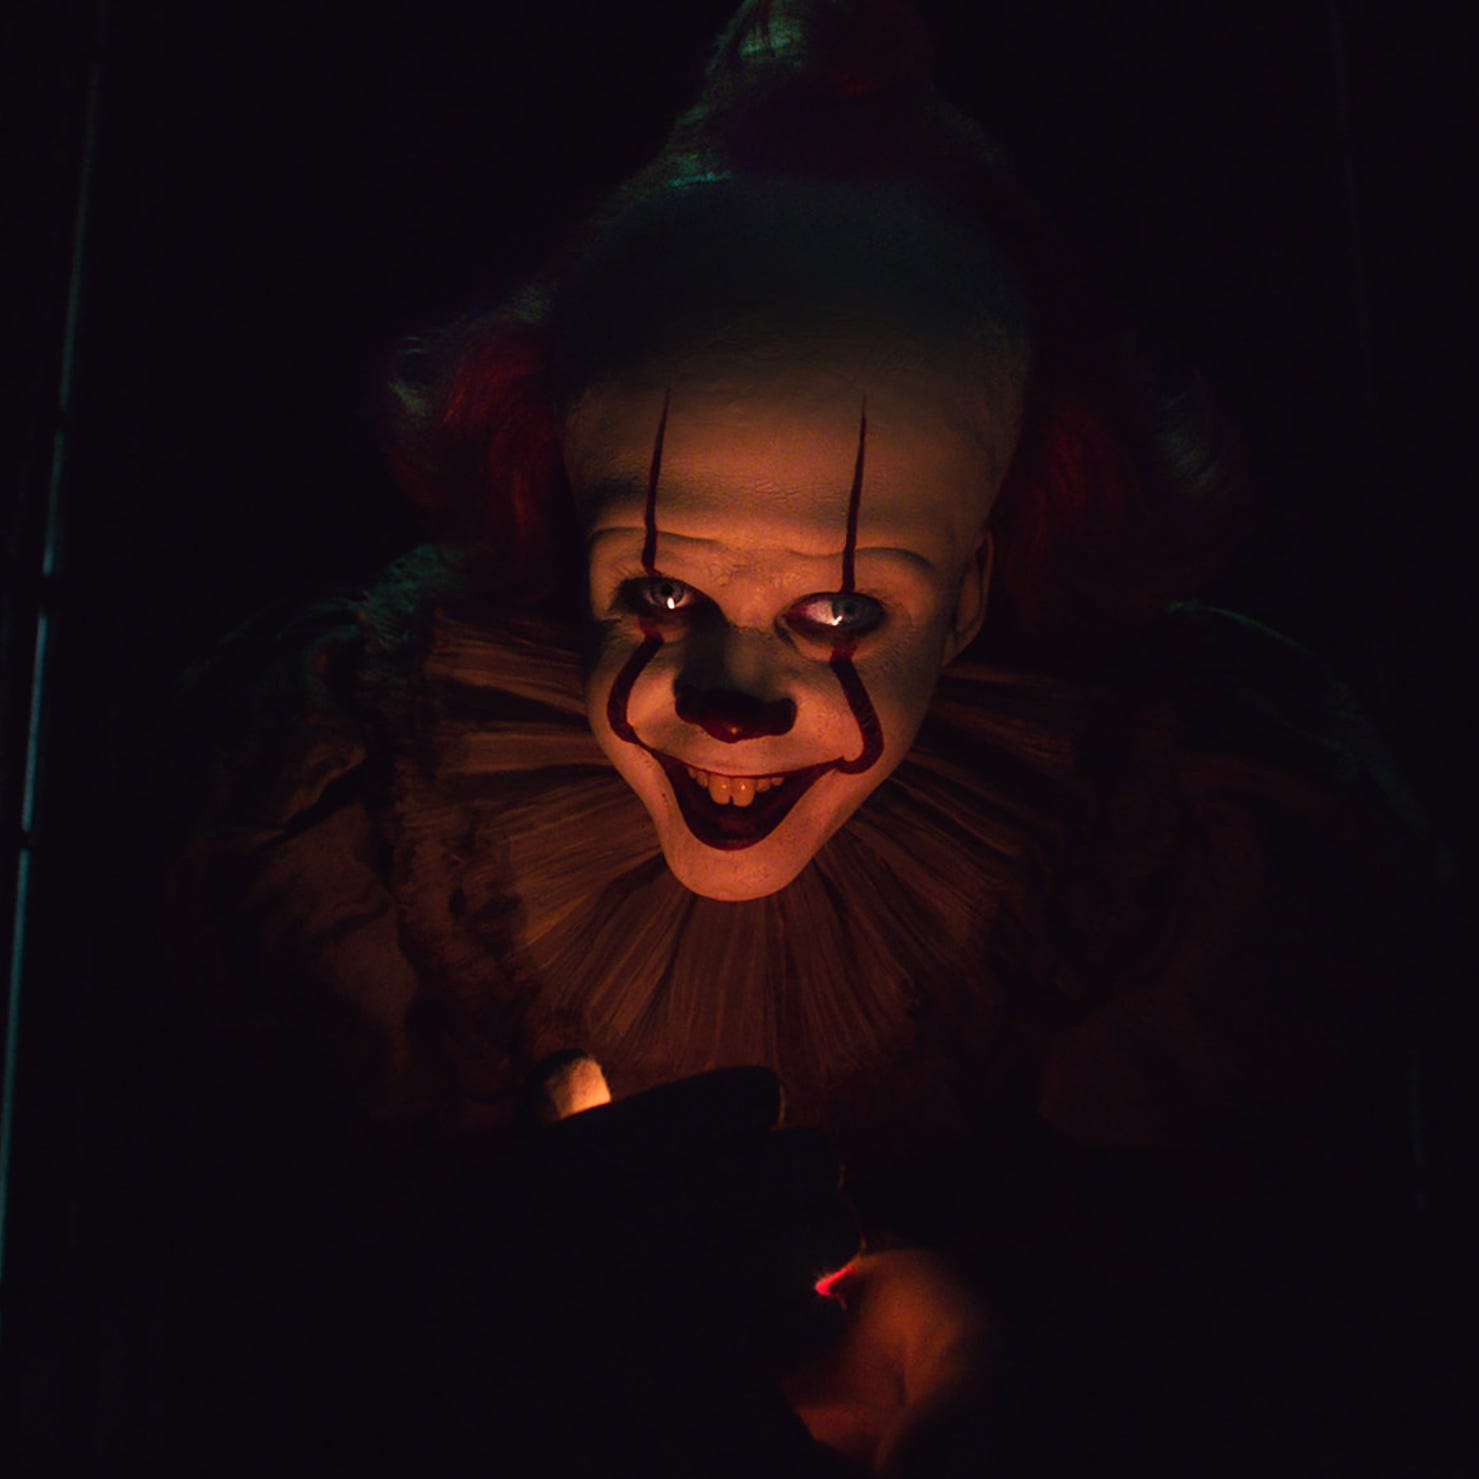 """Pennywise the clown (Bill Skarsgard) returns to haunt Derry again in """"It Chapter Two."""""""